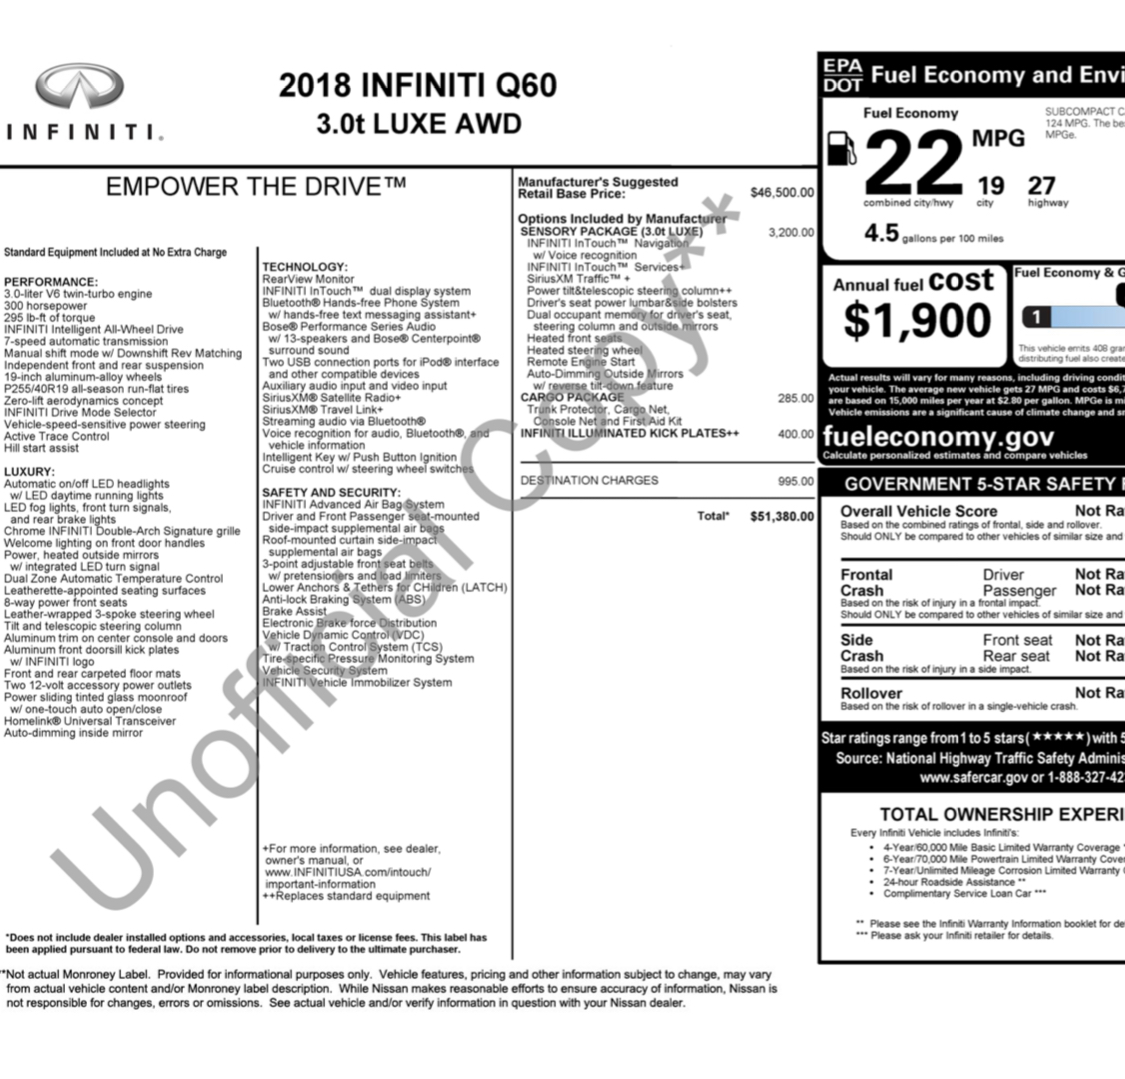 Online vehicle tax and tags calculators | dmv. Org.